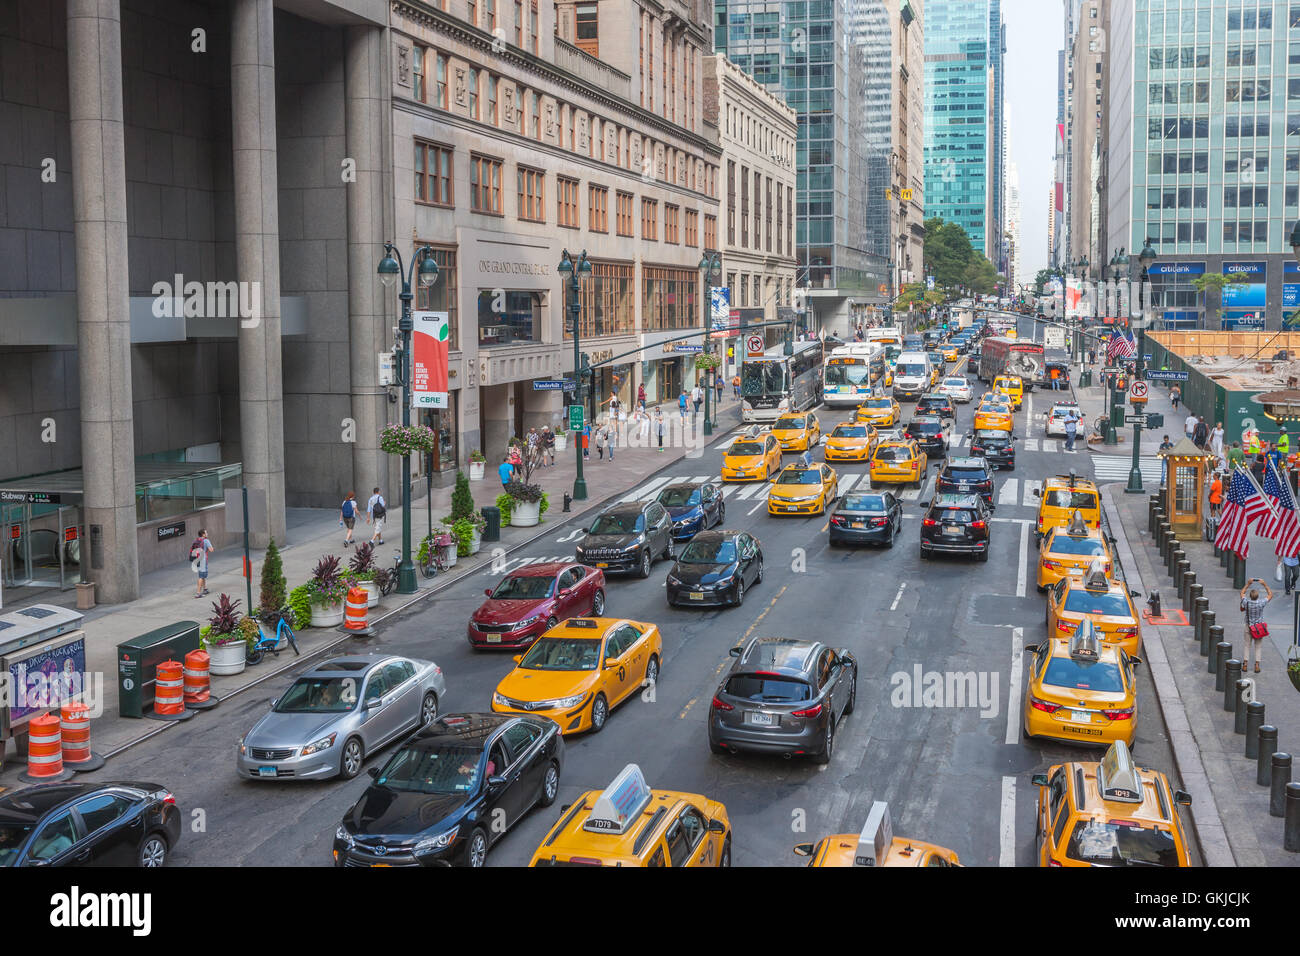 A view of traffic on 42nd street in mid-town Manhattan in New York City. Stock Photo